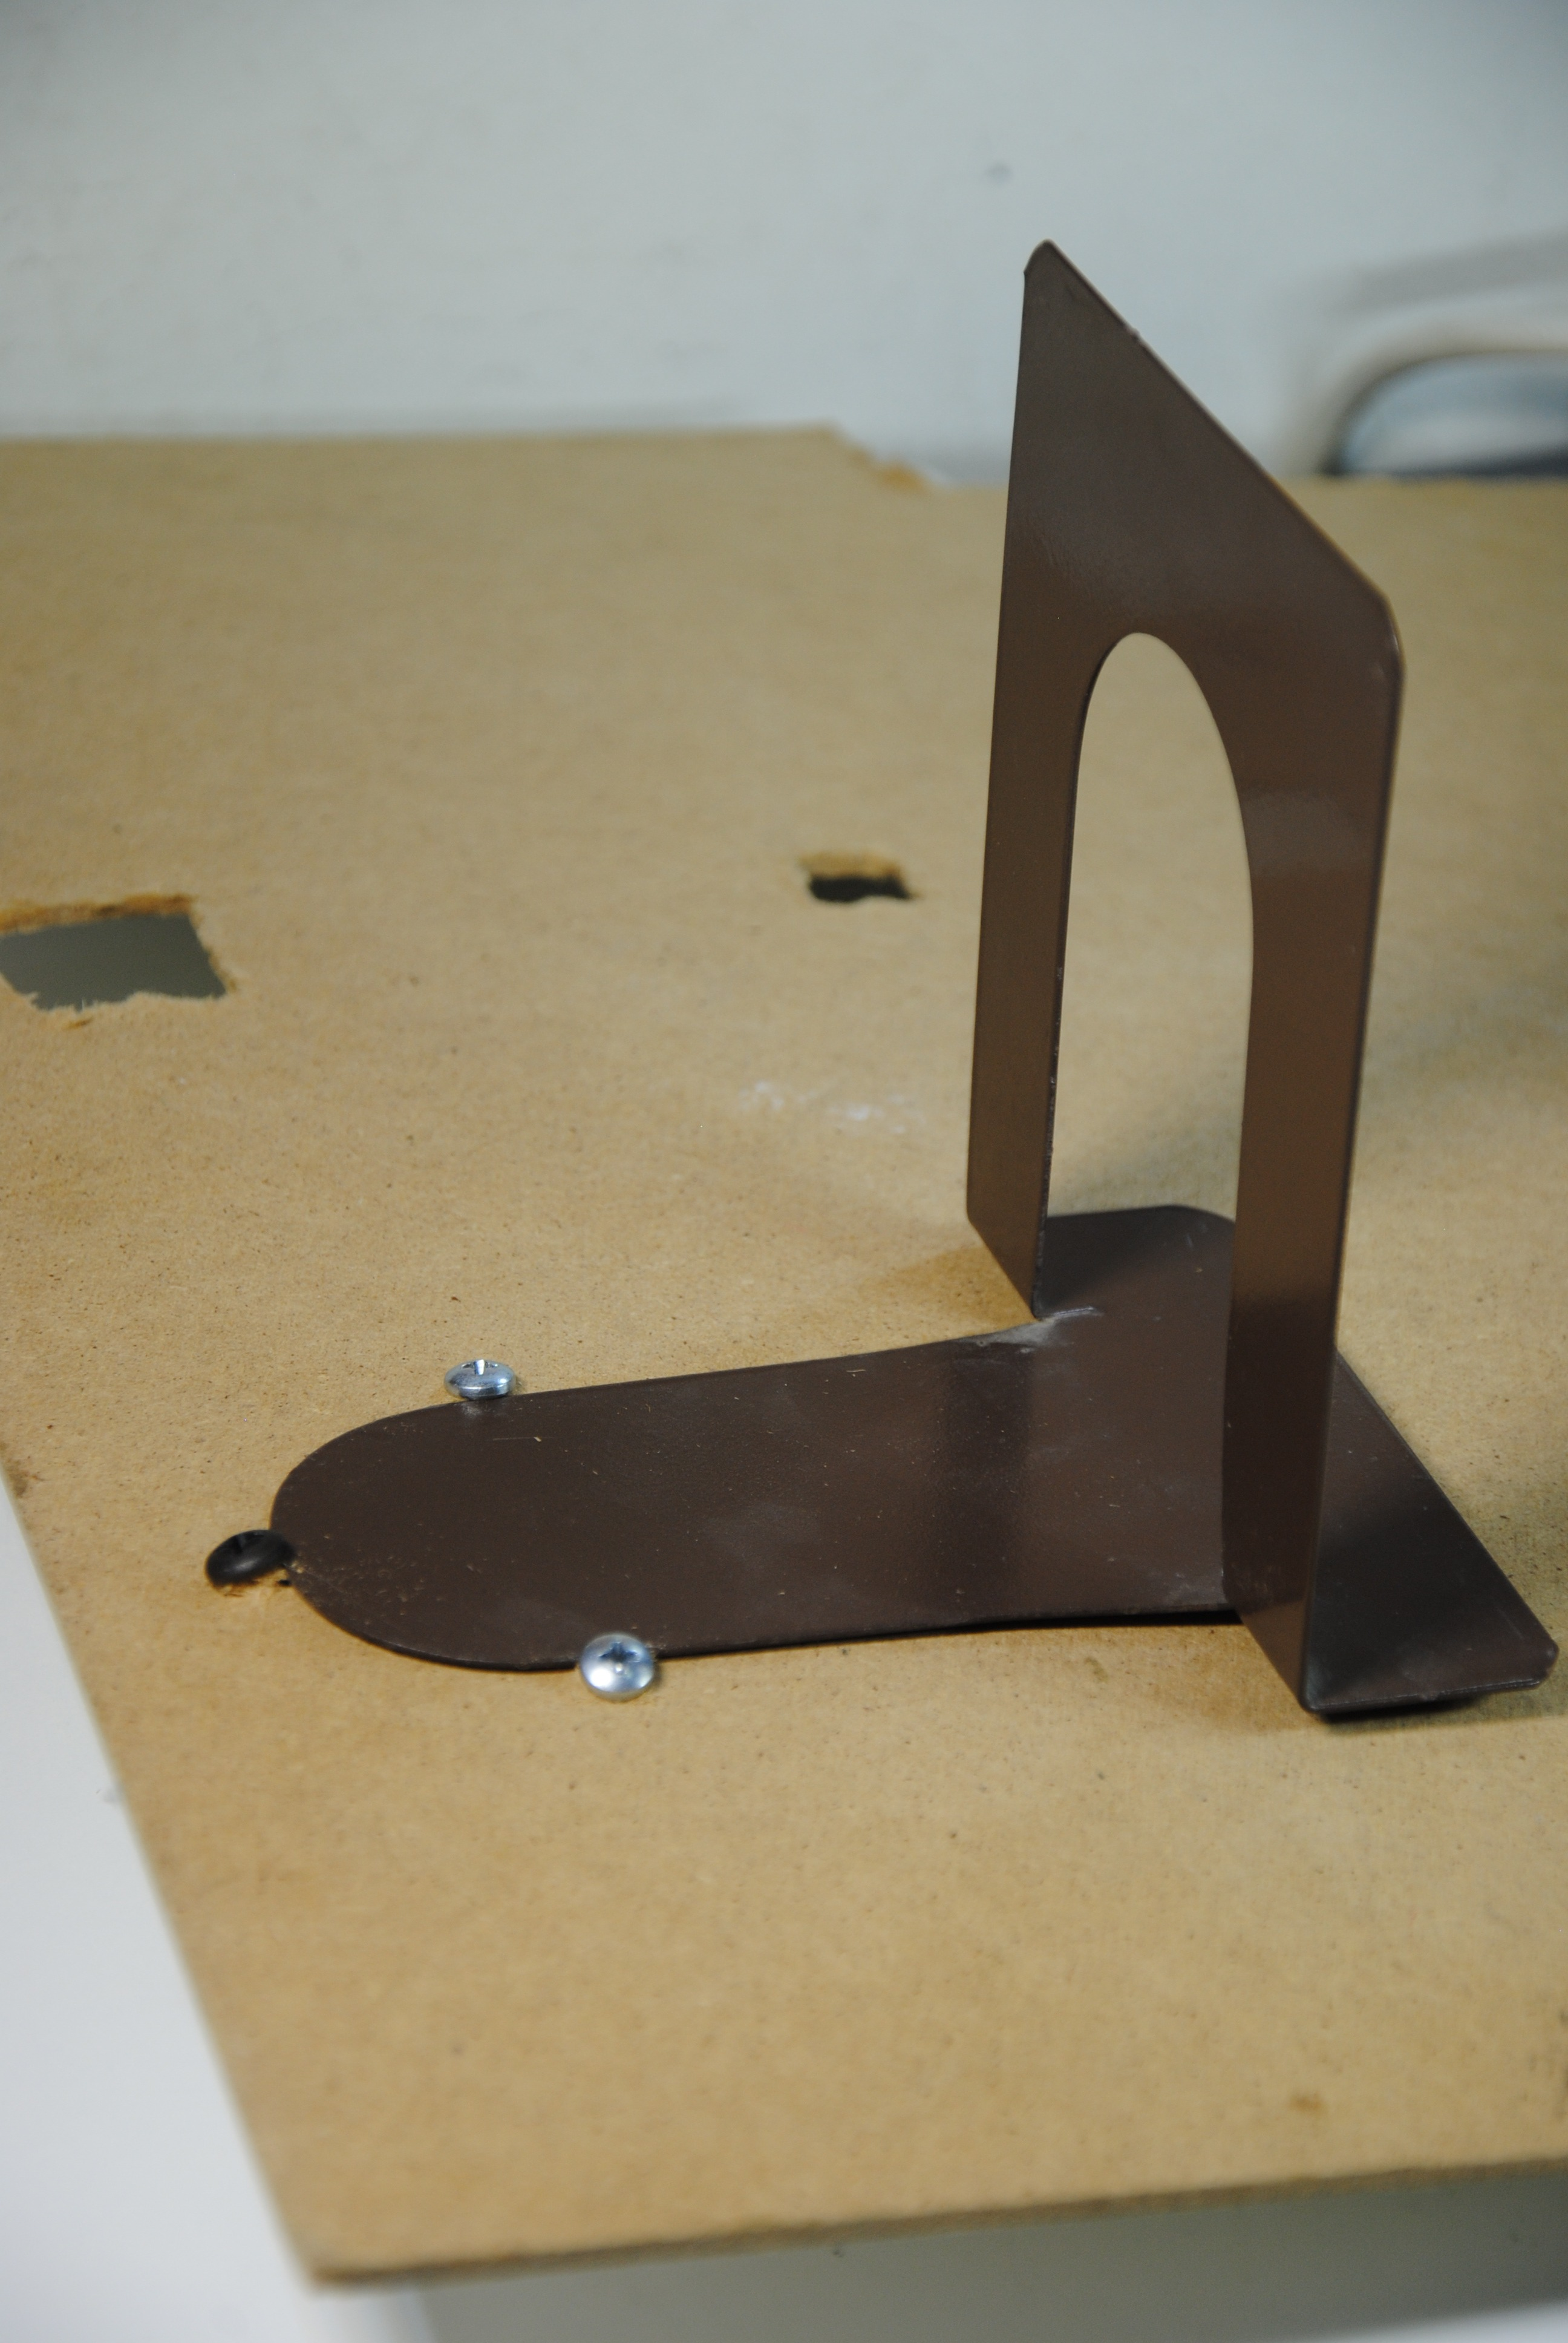 Picture of Metal Book Dividers for Shelves - Hand-Plane Holders!